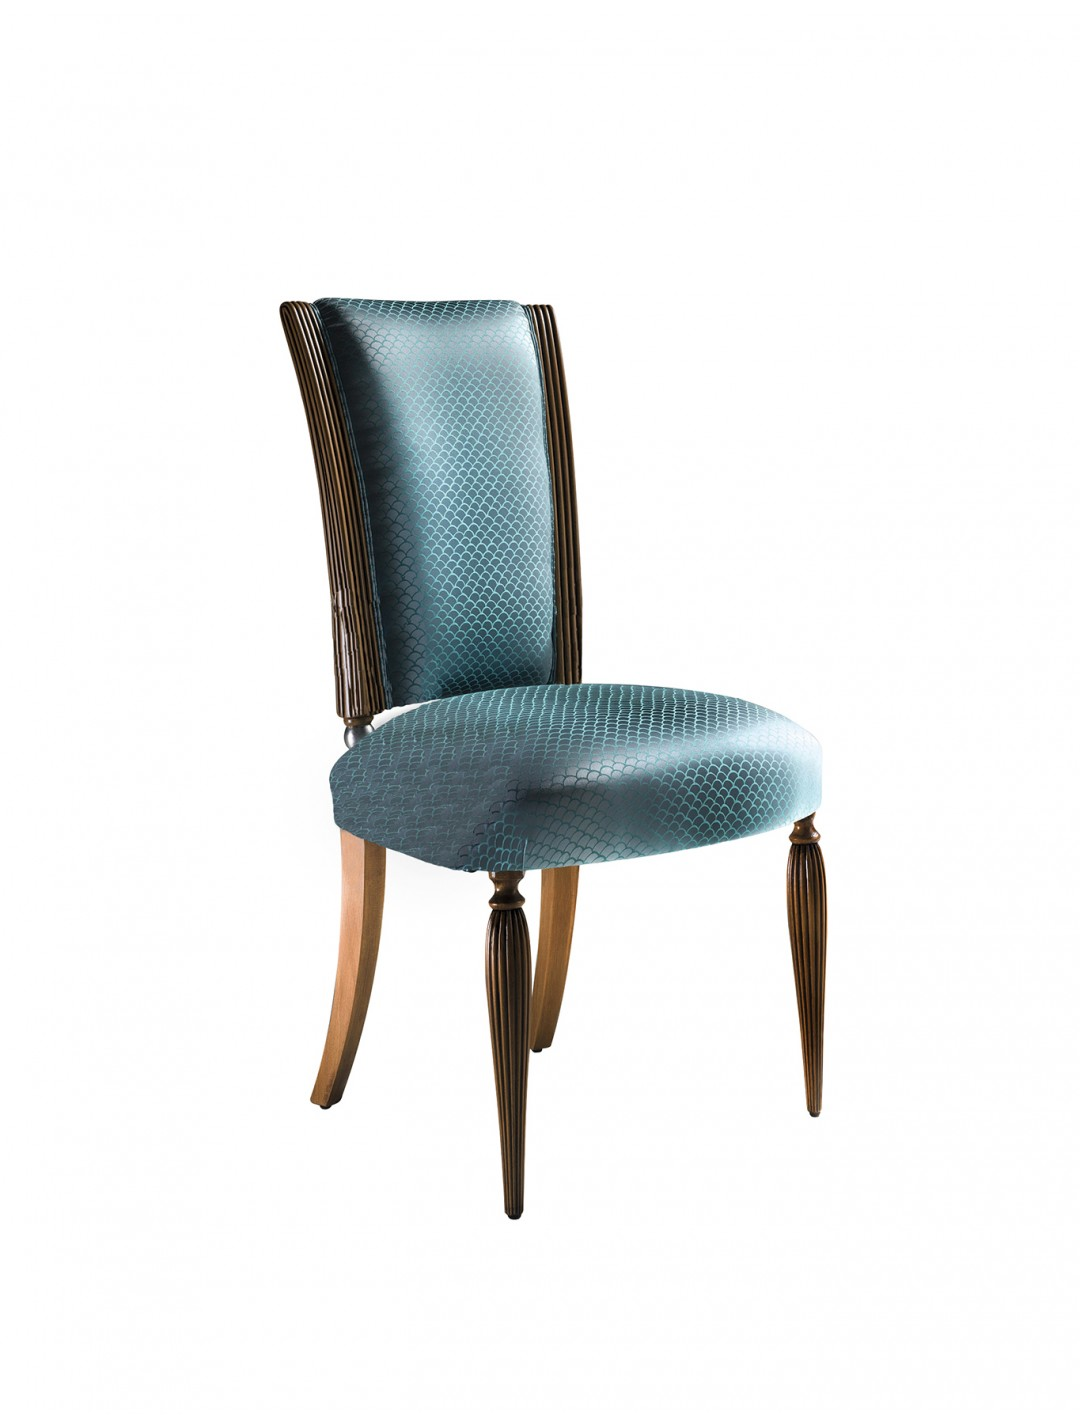 DECO DINING CHAIR, C.O.M.